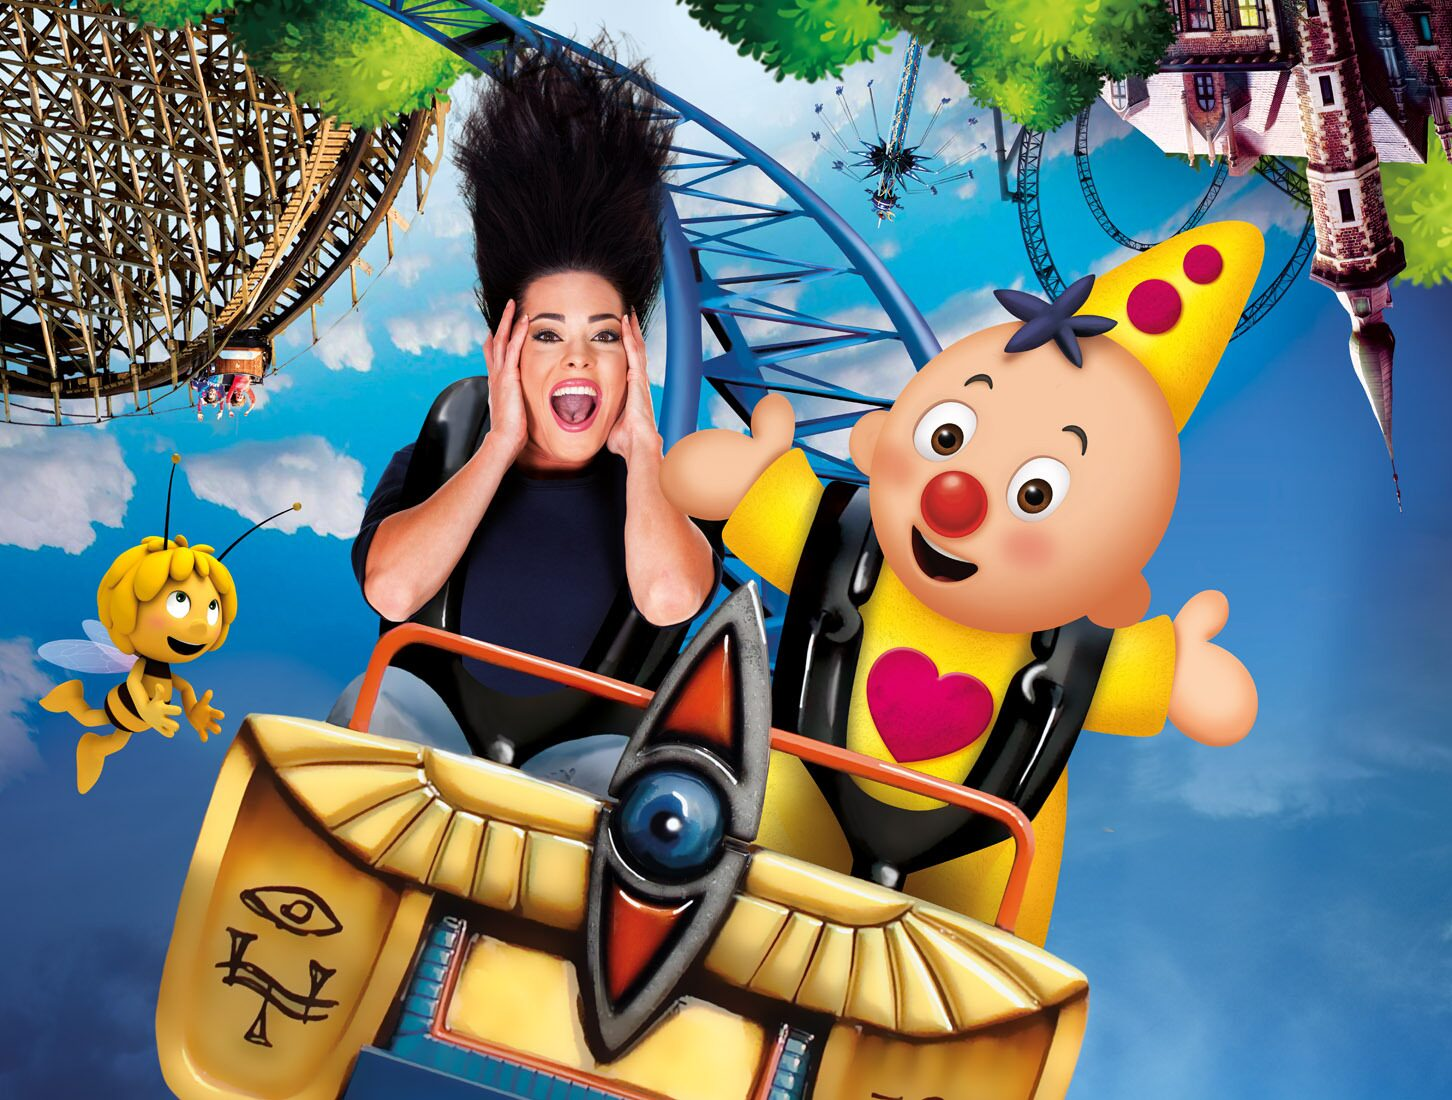 Plopsaland De Panne Package Deal